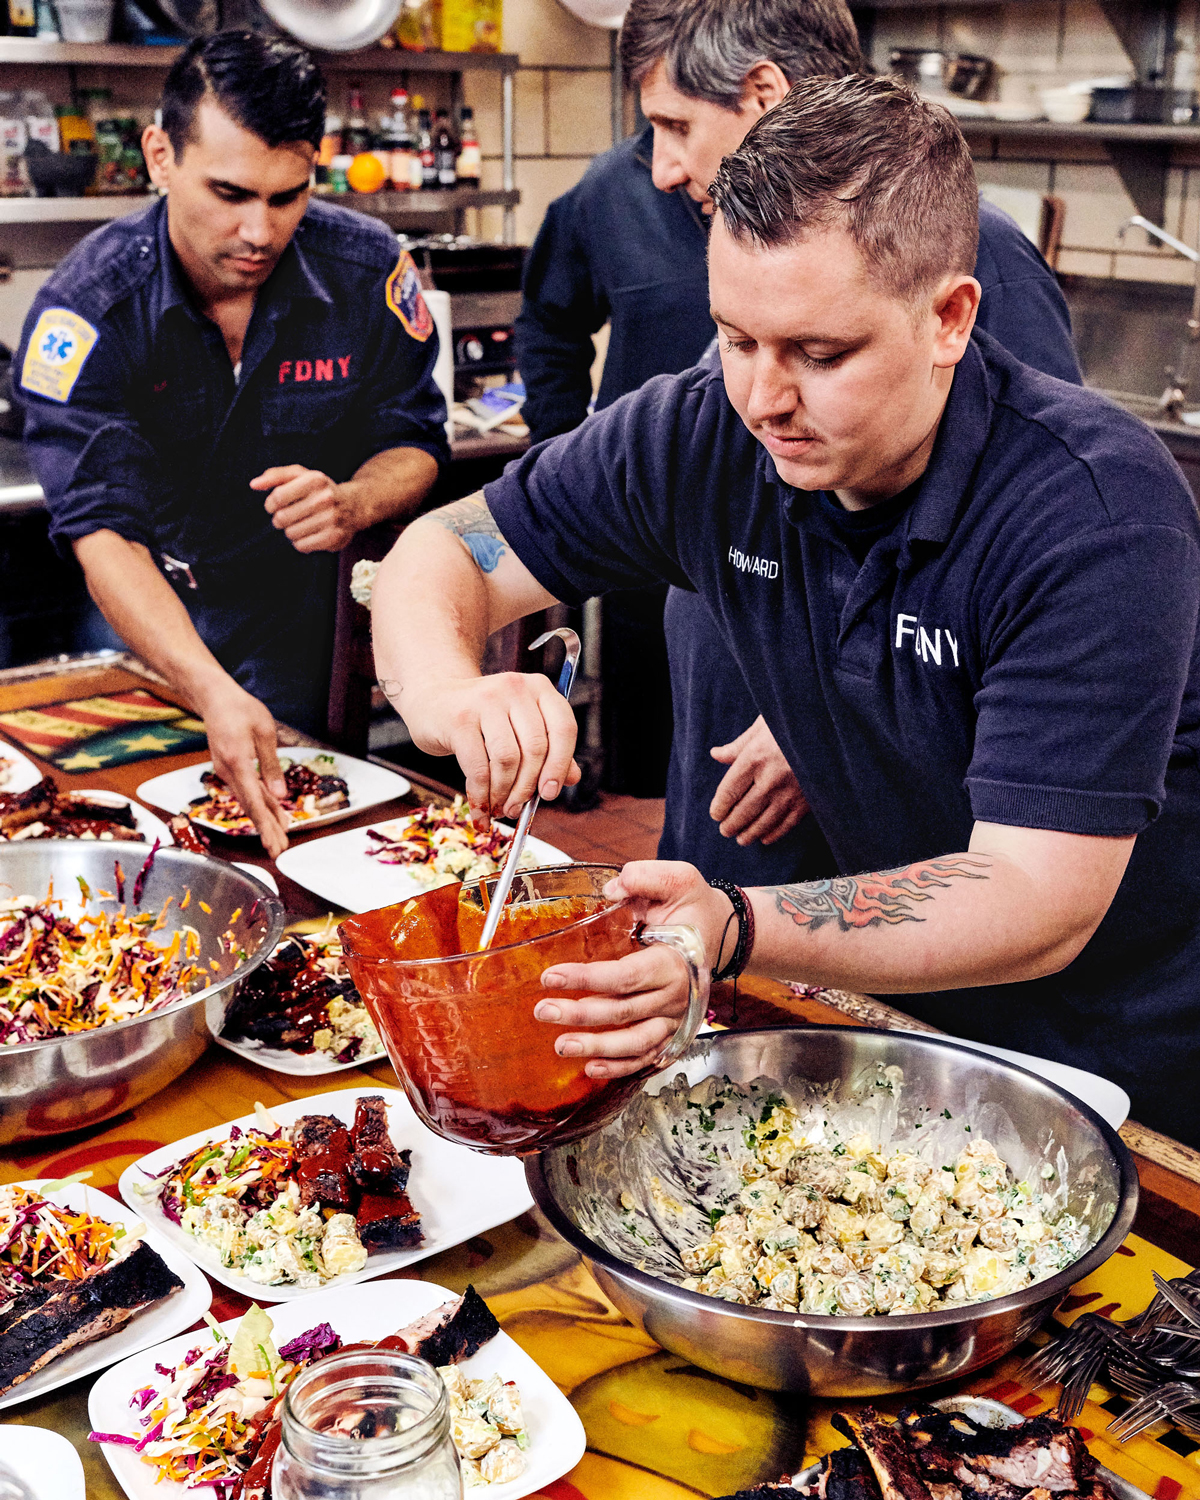 firefighters plating coleslaw and potato salad